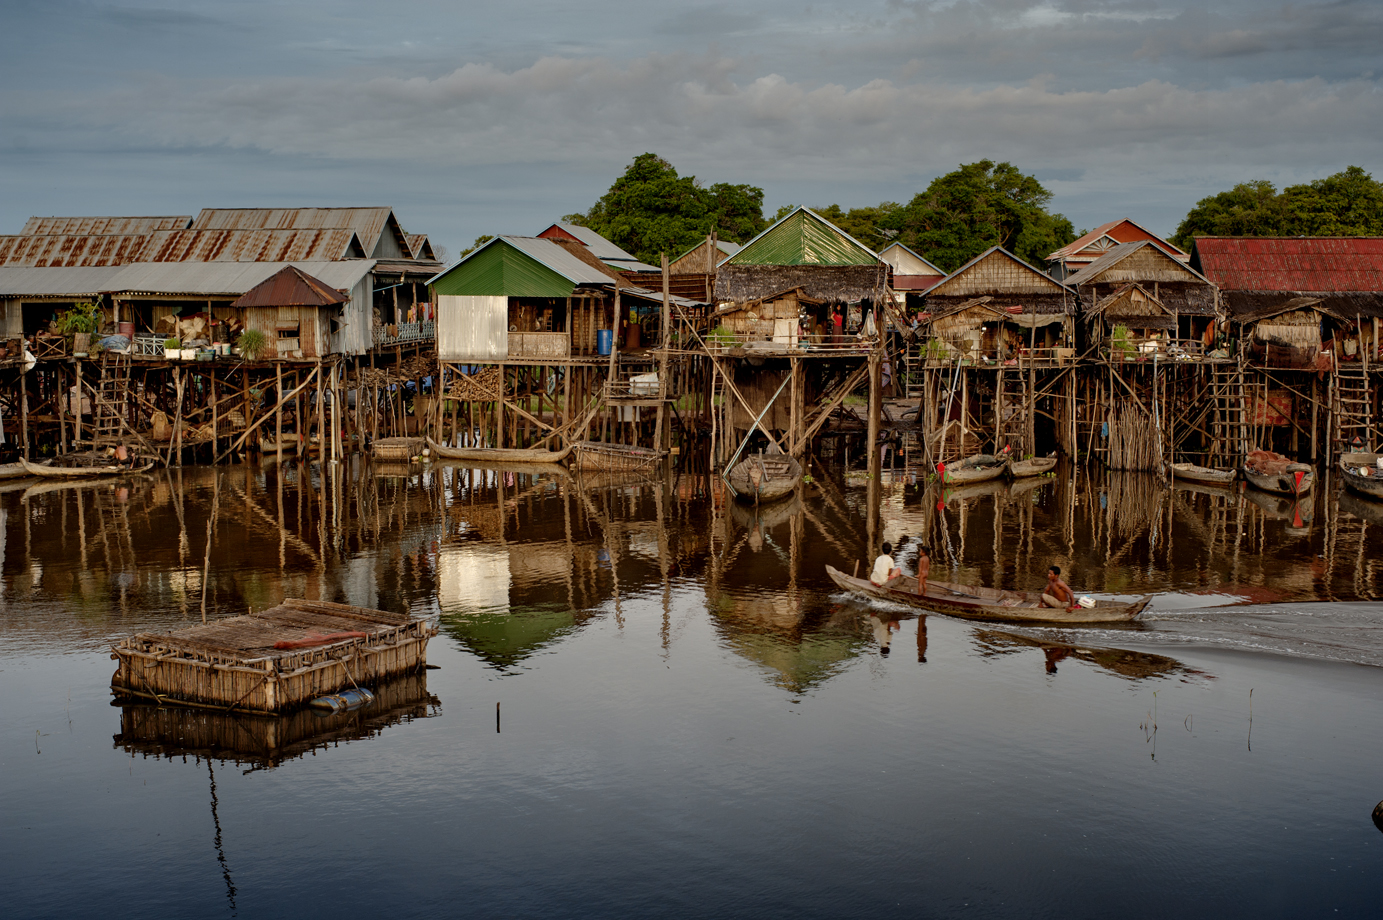 Floating village, Tonlé Sap / Cambodia